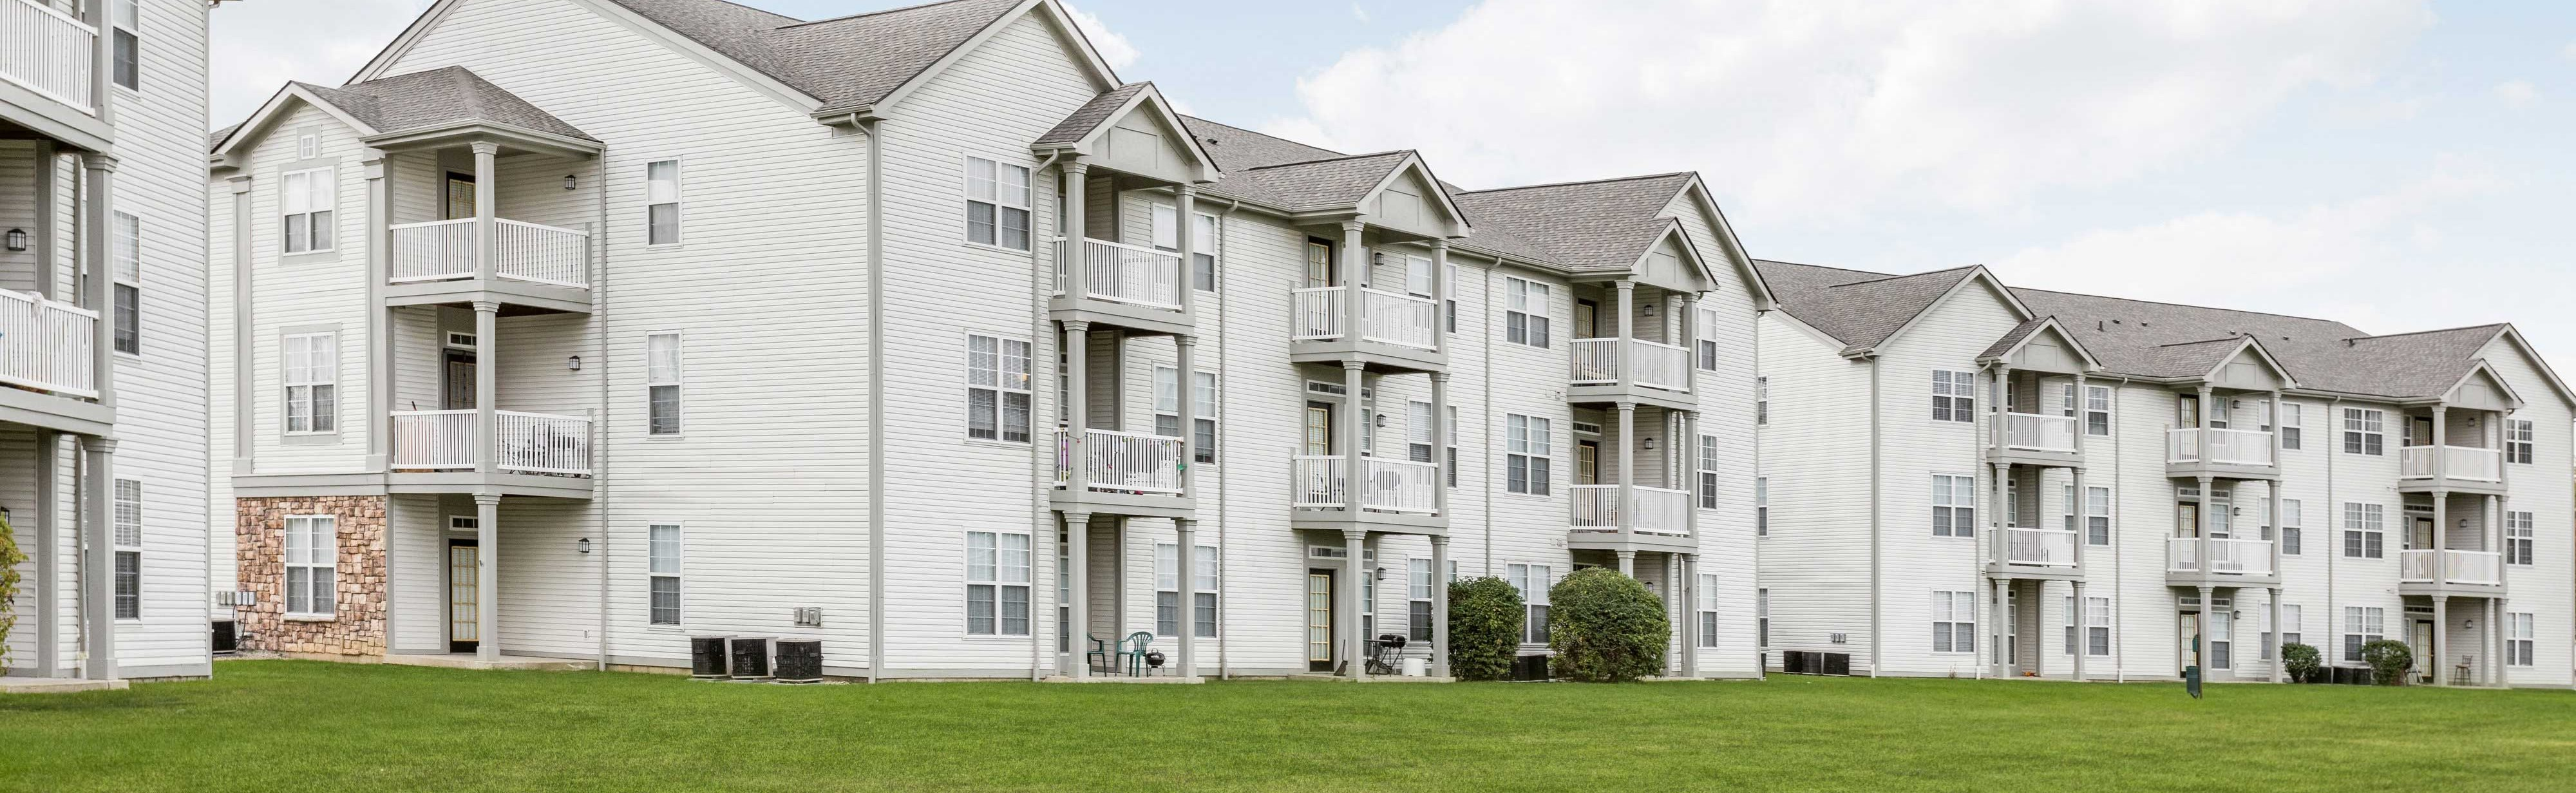 Exterior View of Riverchase Apartment Homes